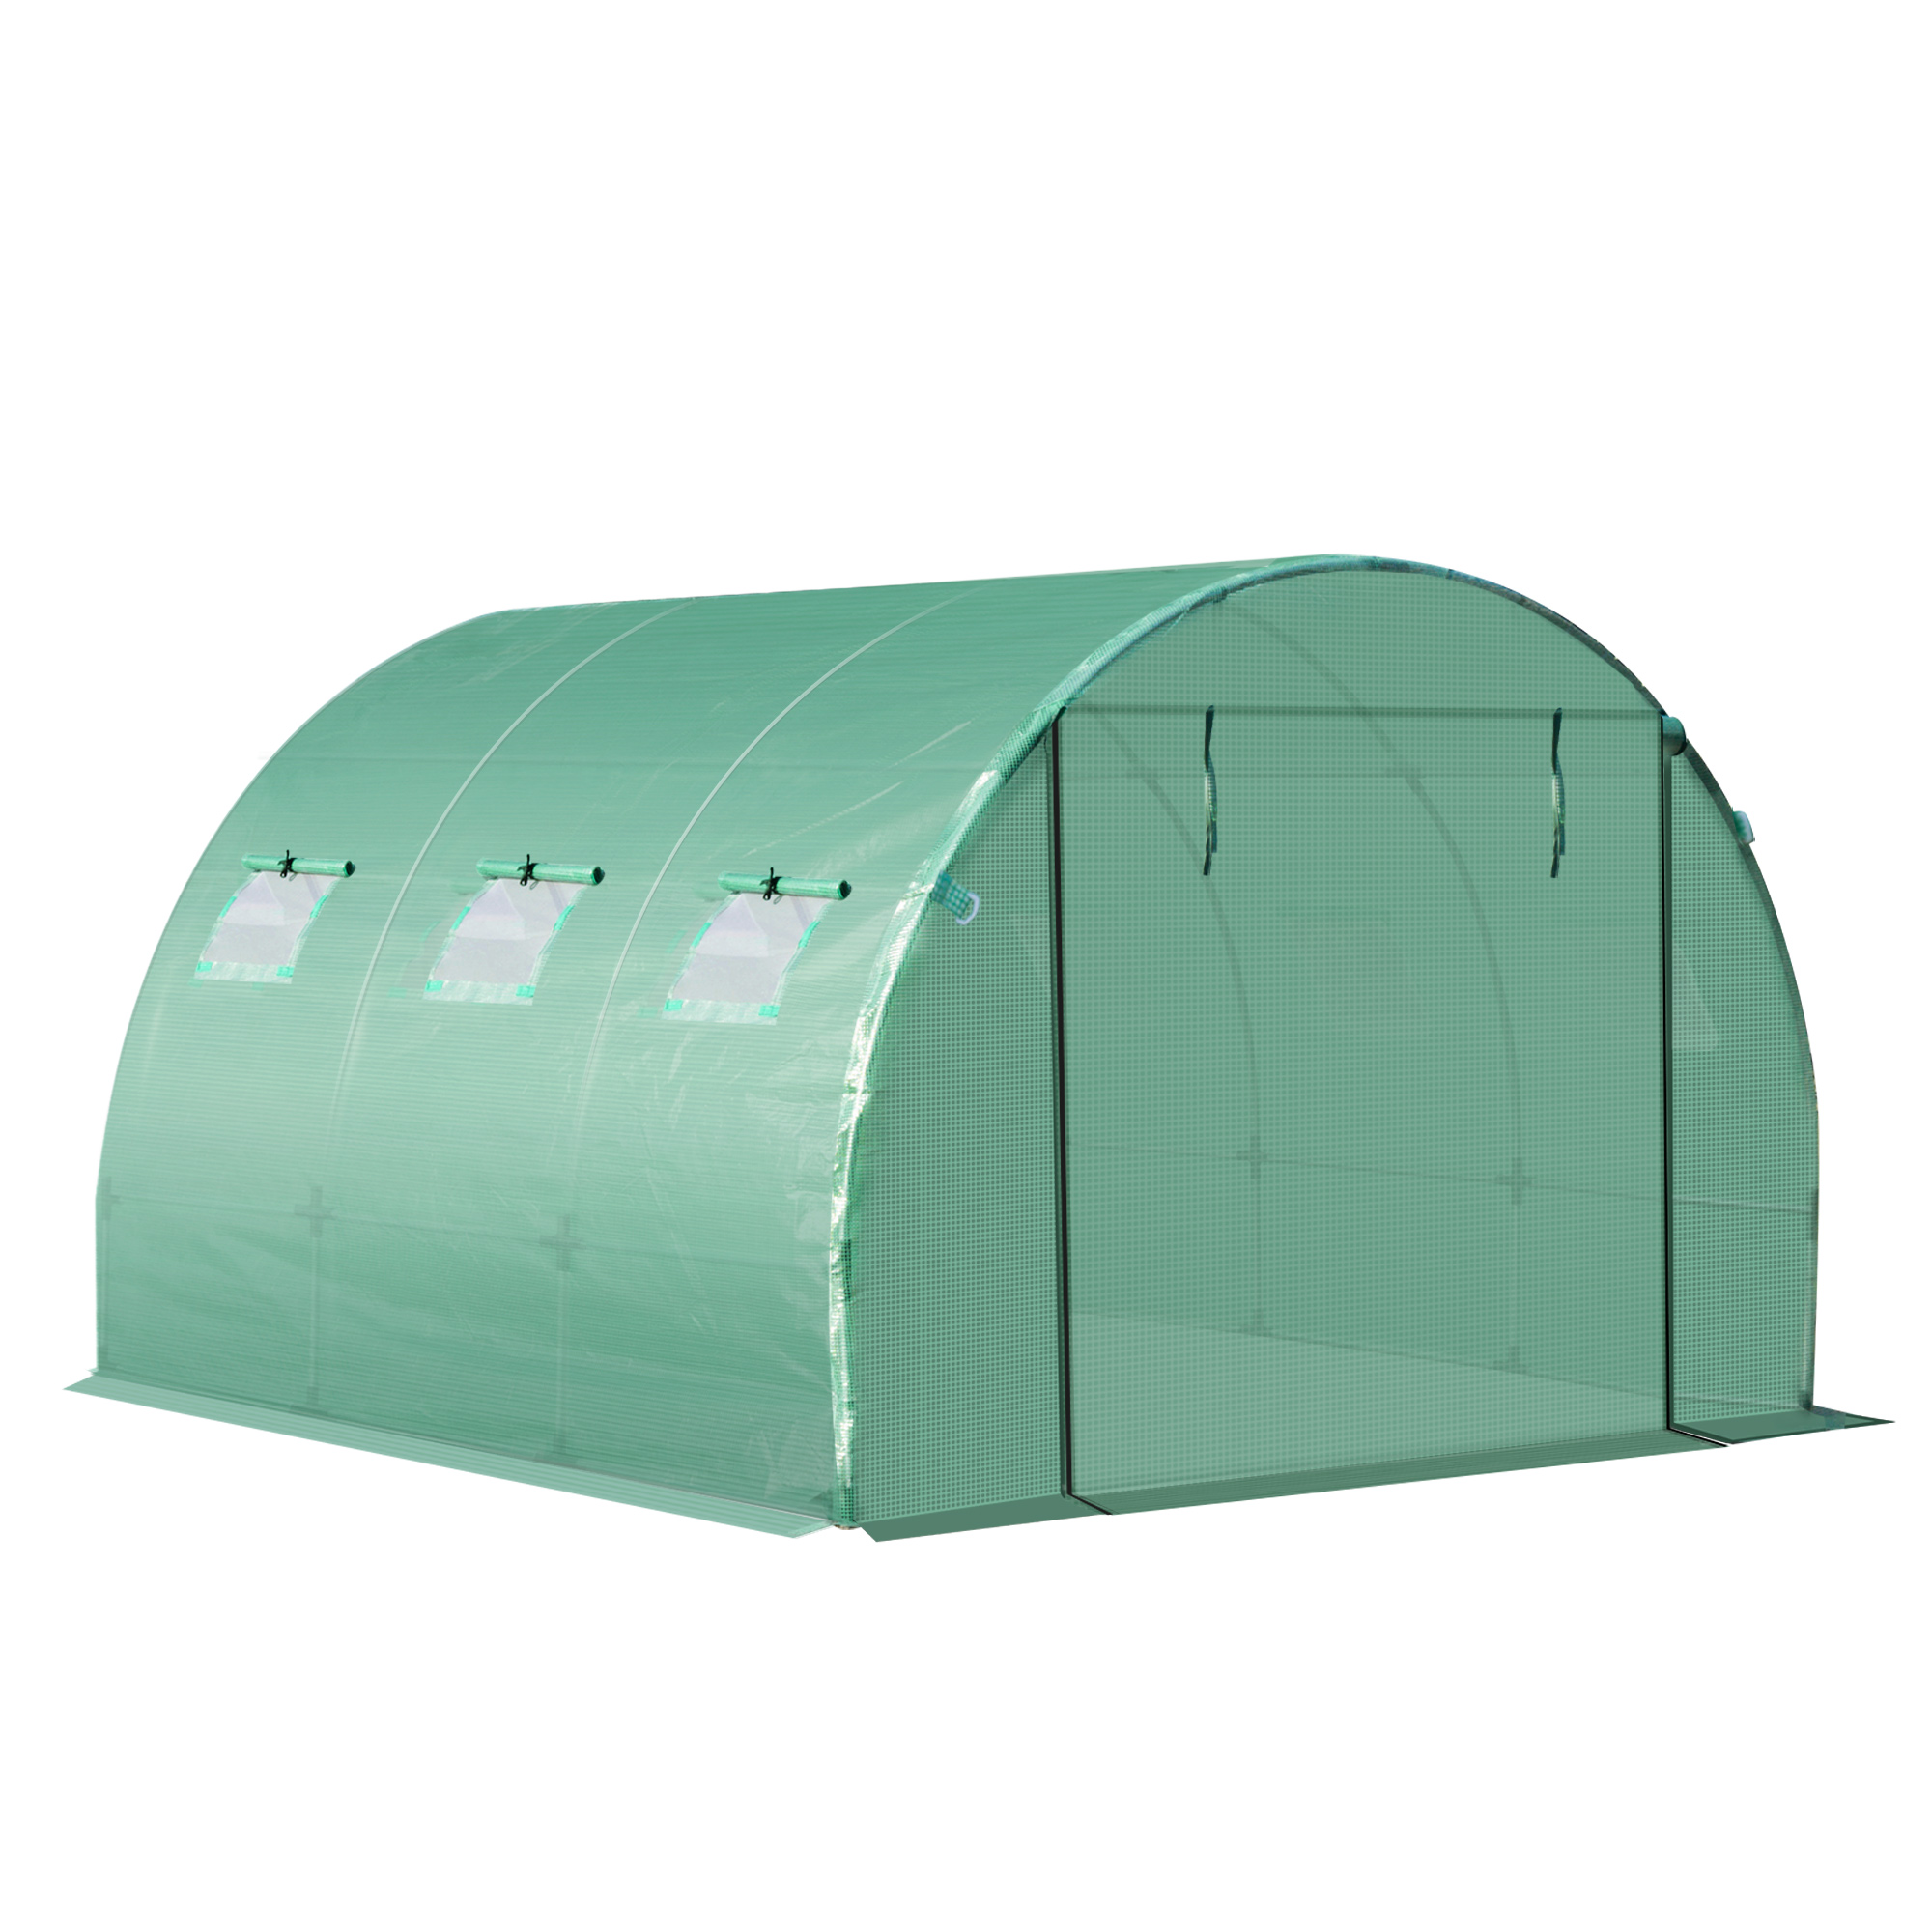 Indexbild 15 - Greenhouse-Replacement-Cover-ONLY-for-Tunnel-Walk-in-Greenhouse